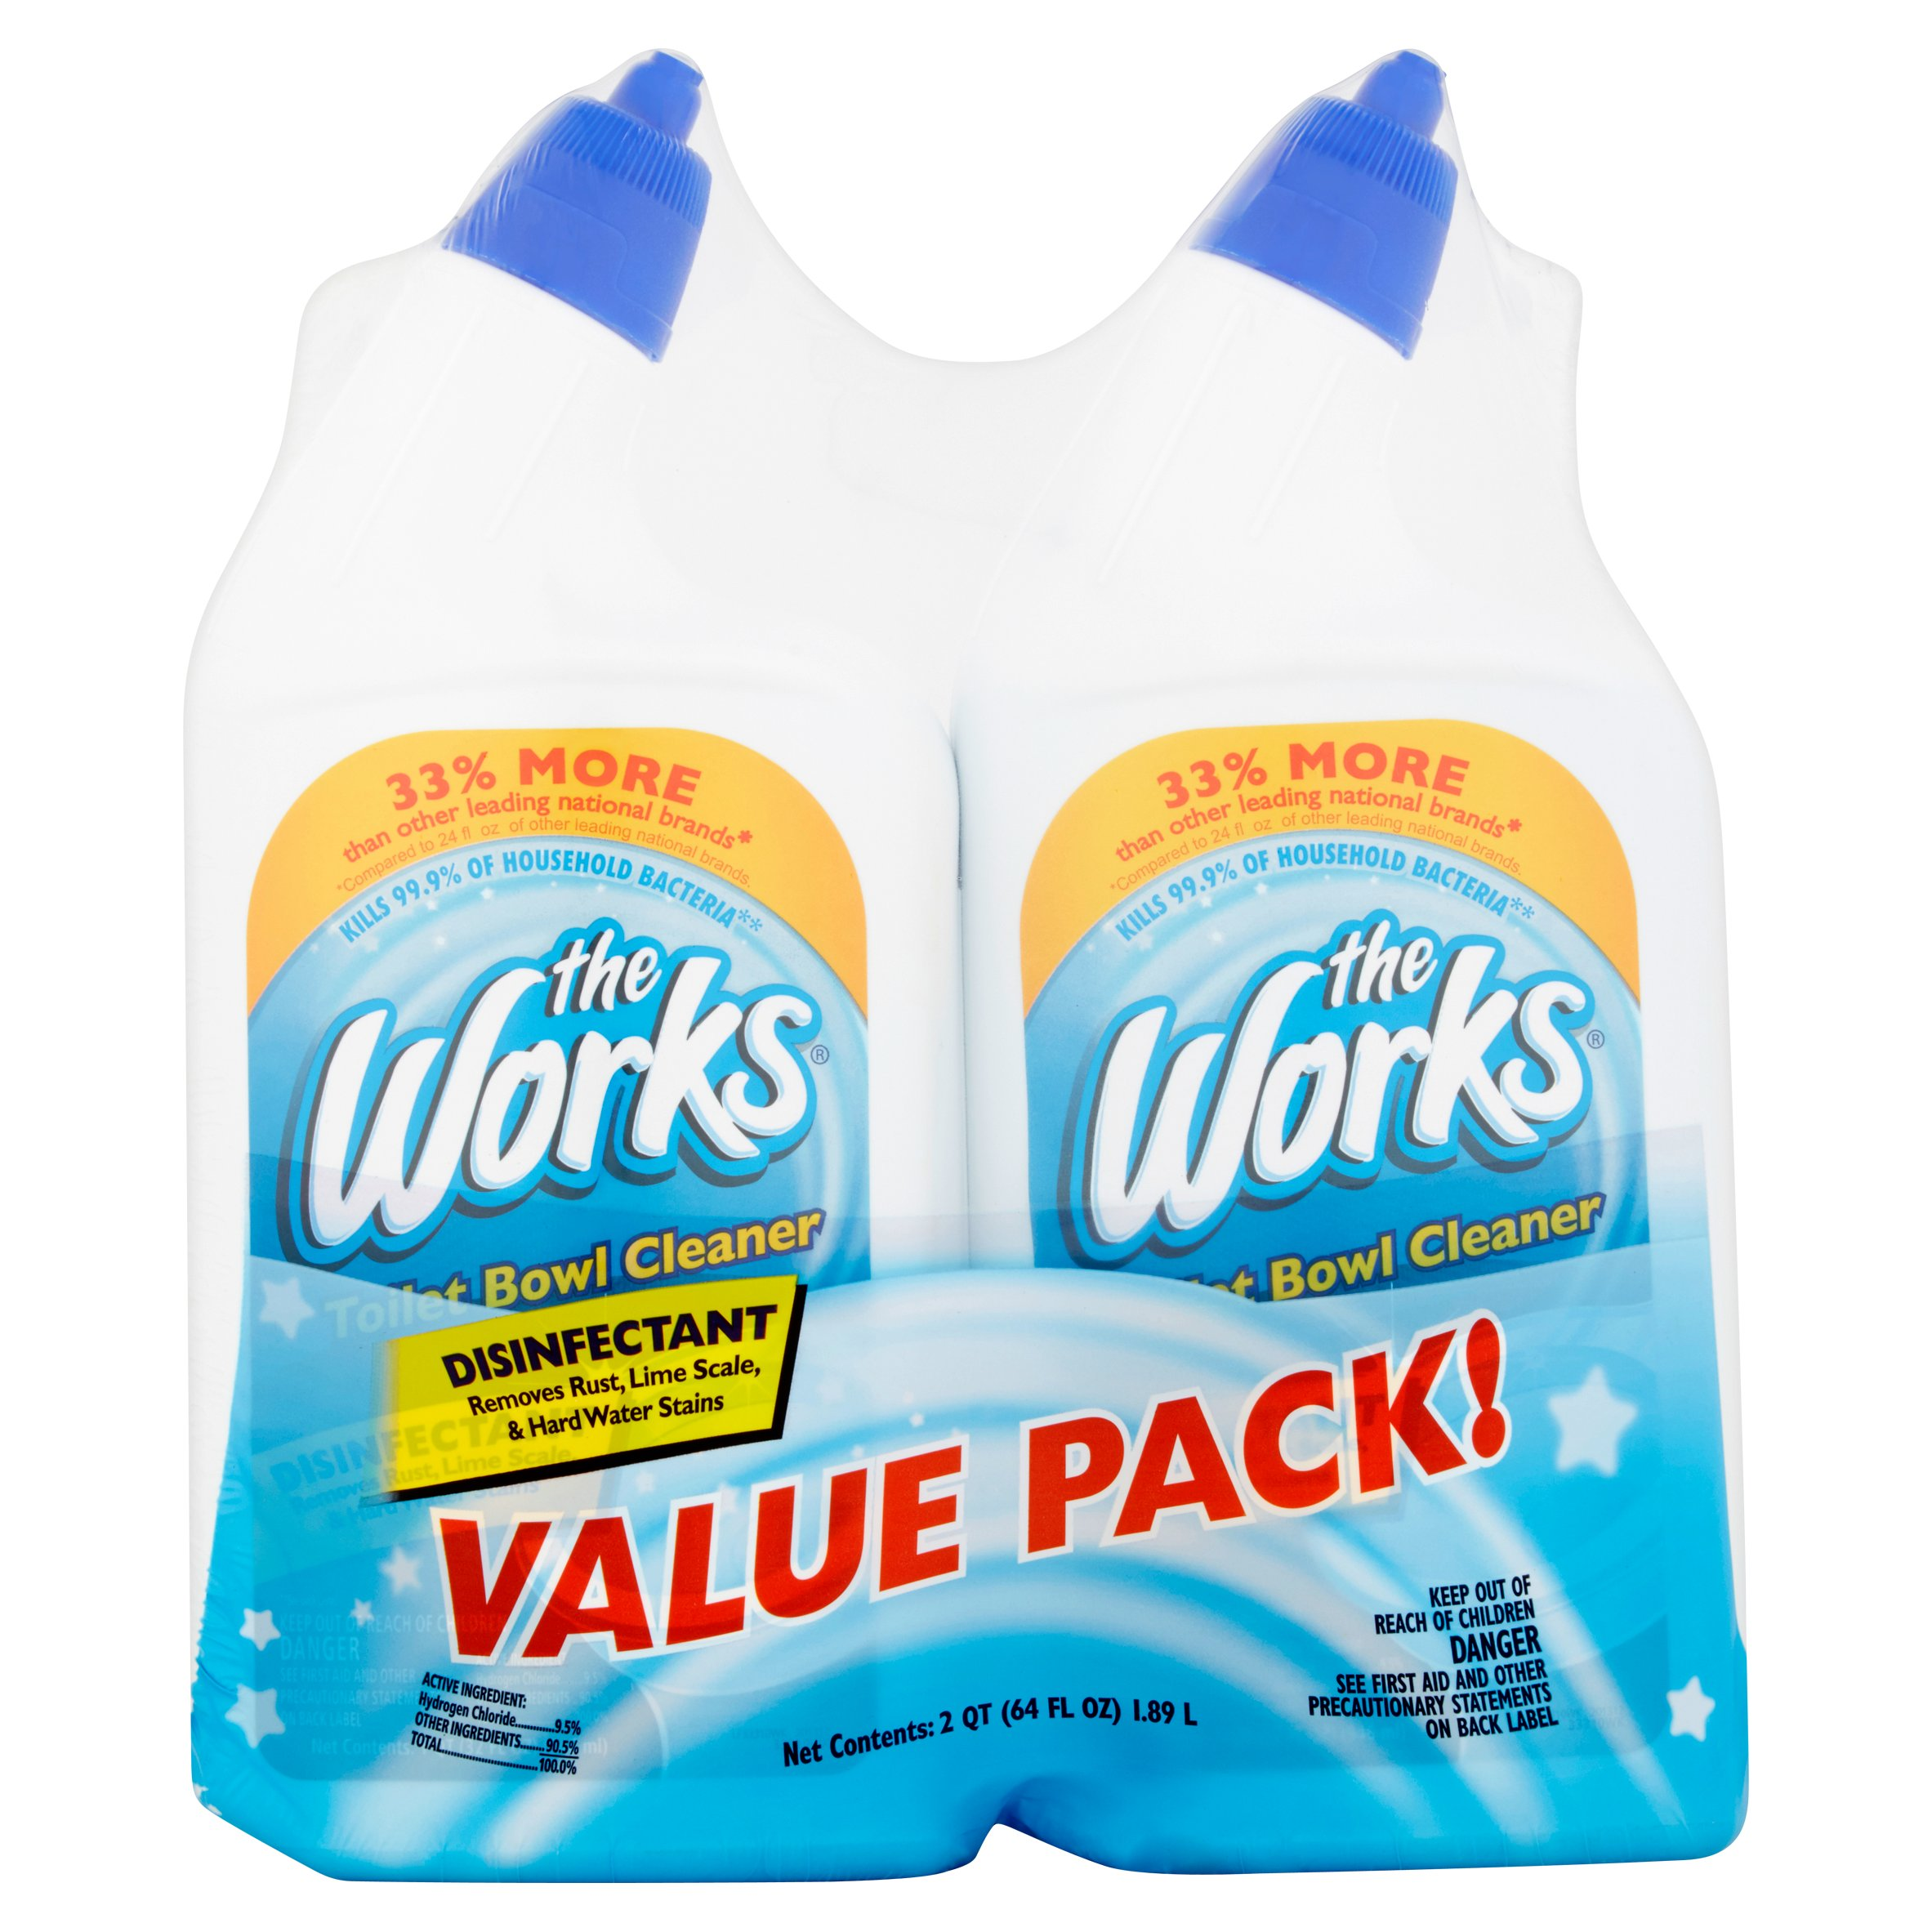 Delicieux The Works Disinfectant Toilet Bowl Cleaner Value Pack, 64 Fl Oz